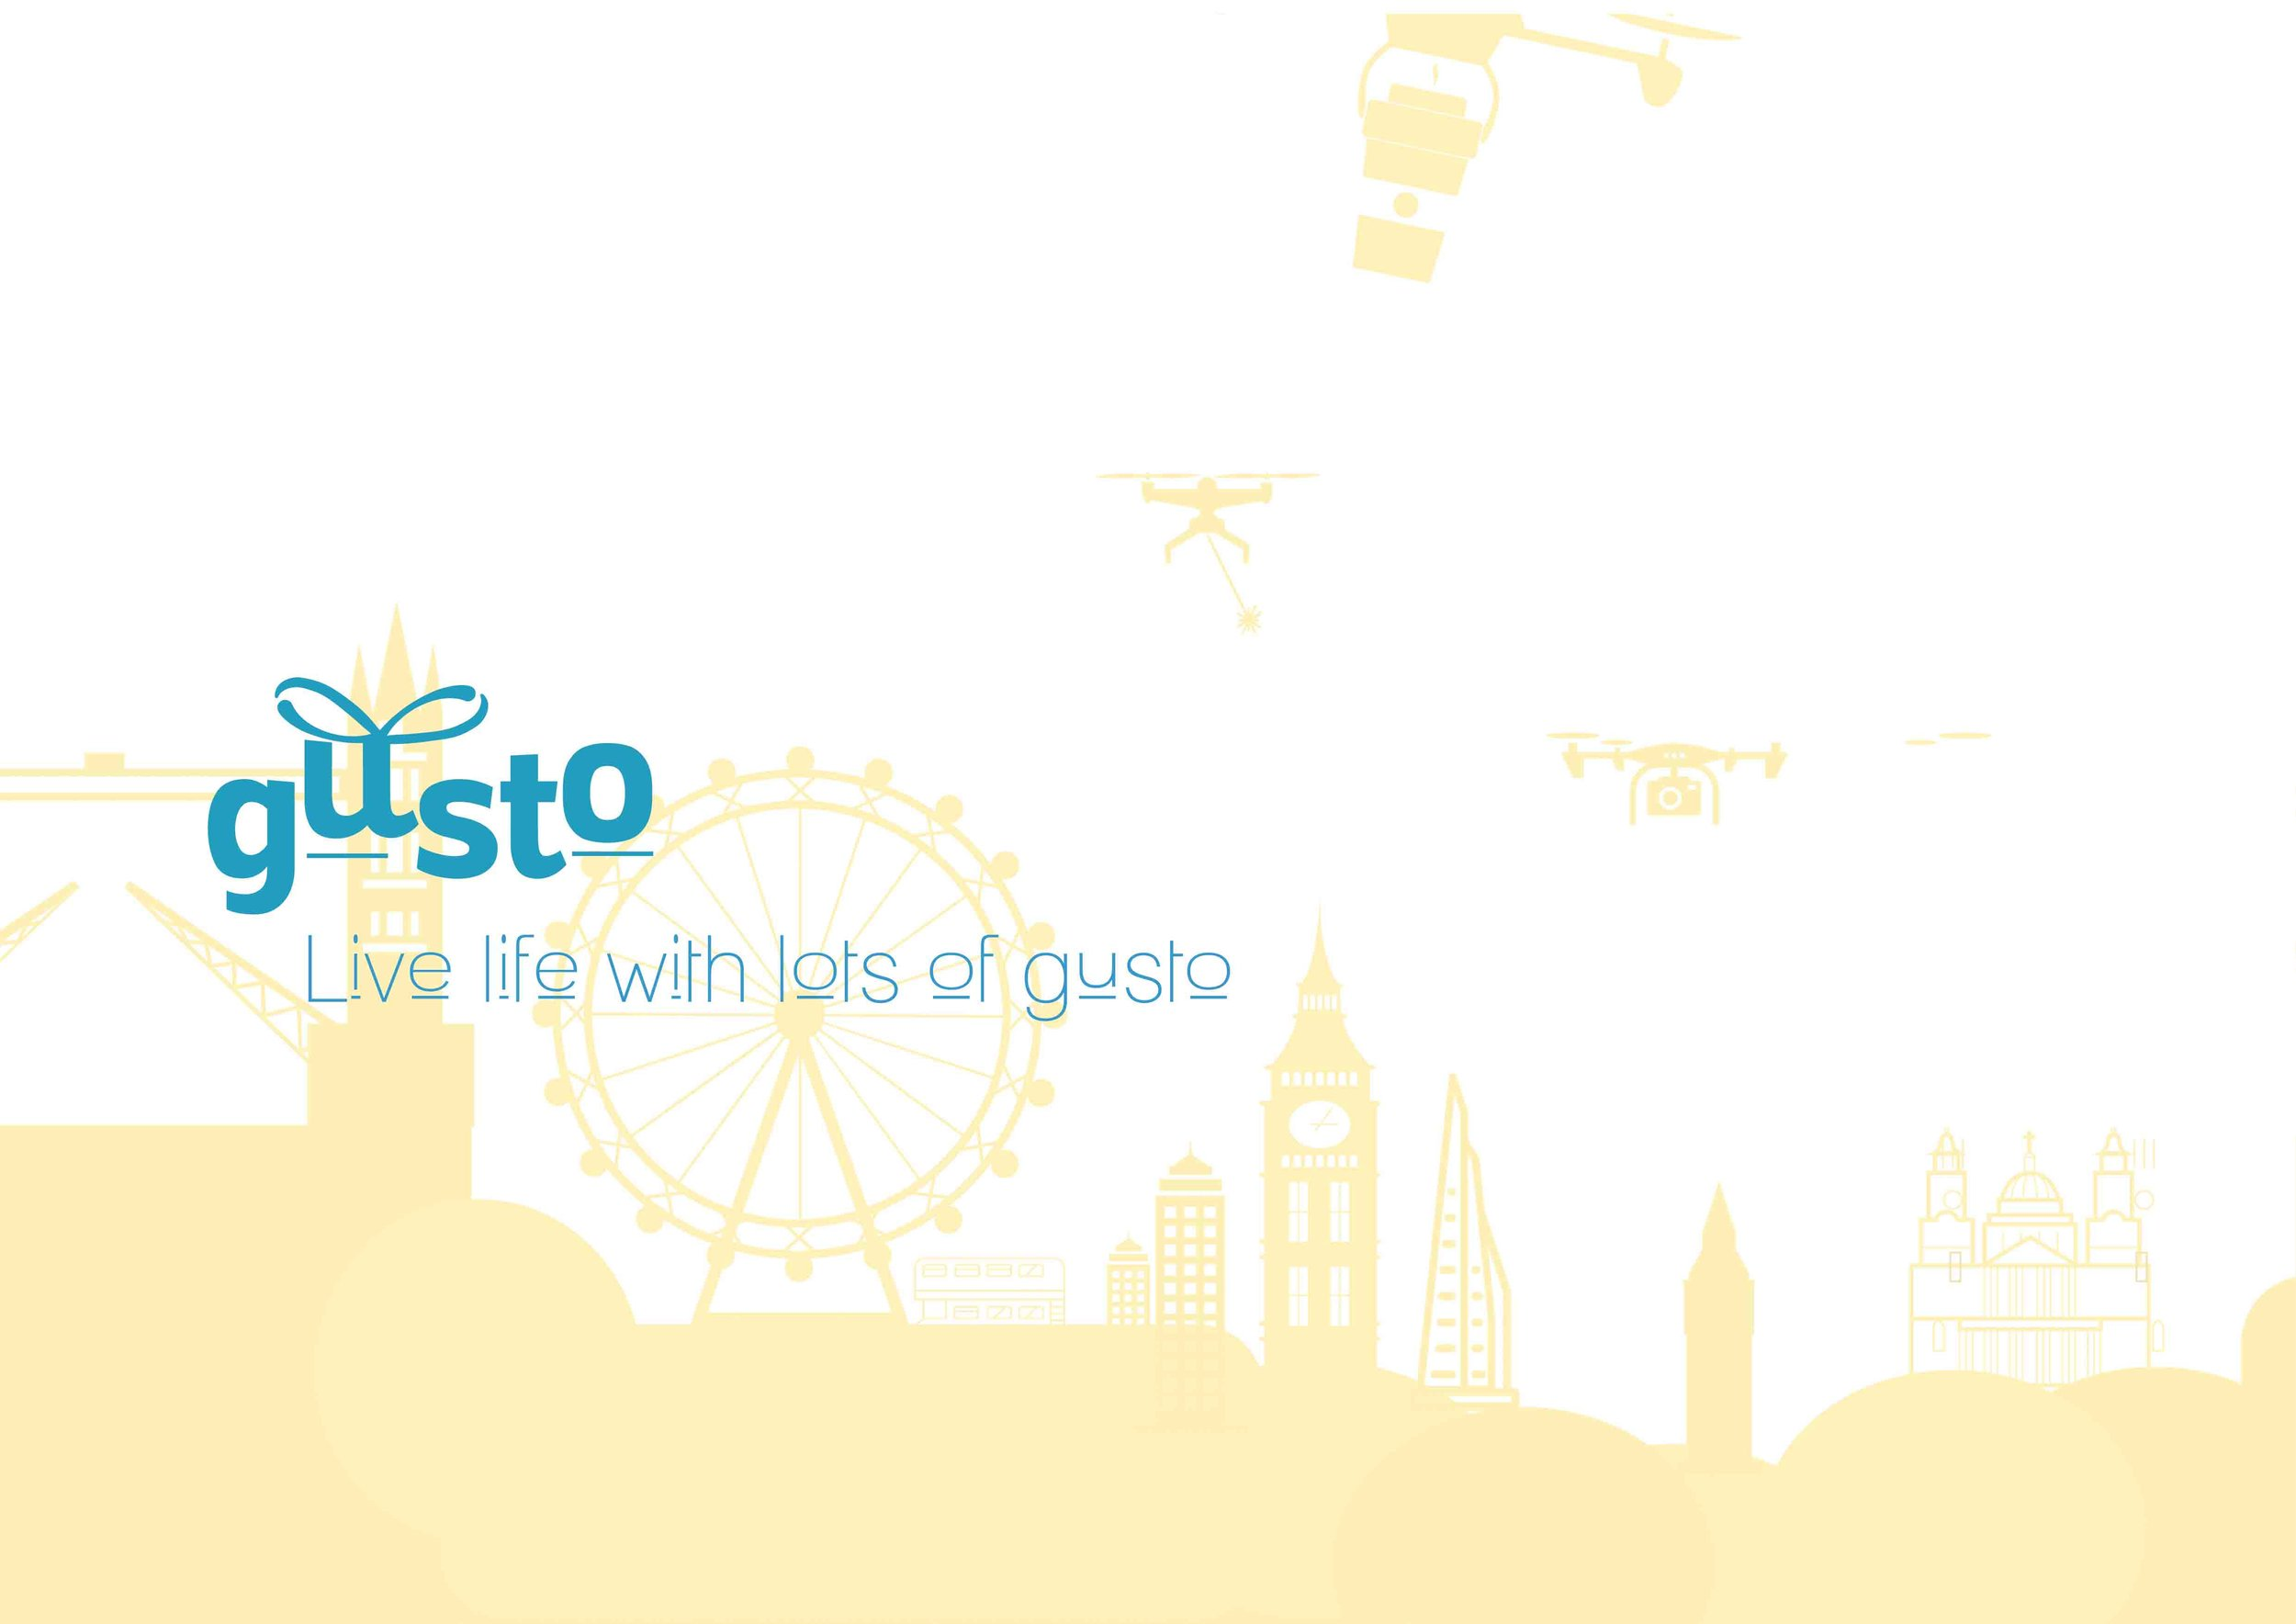 Gusto front cover.jpg